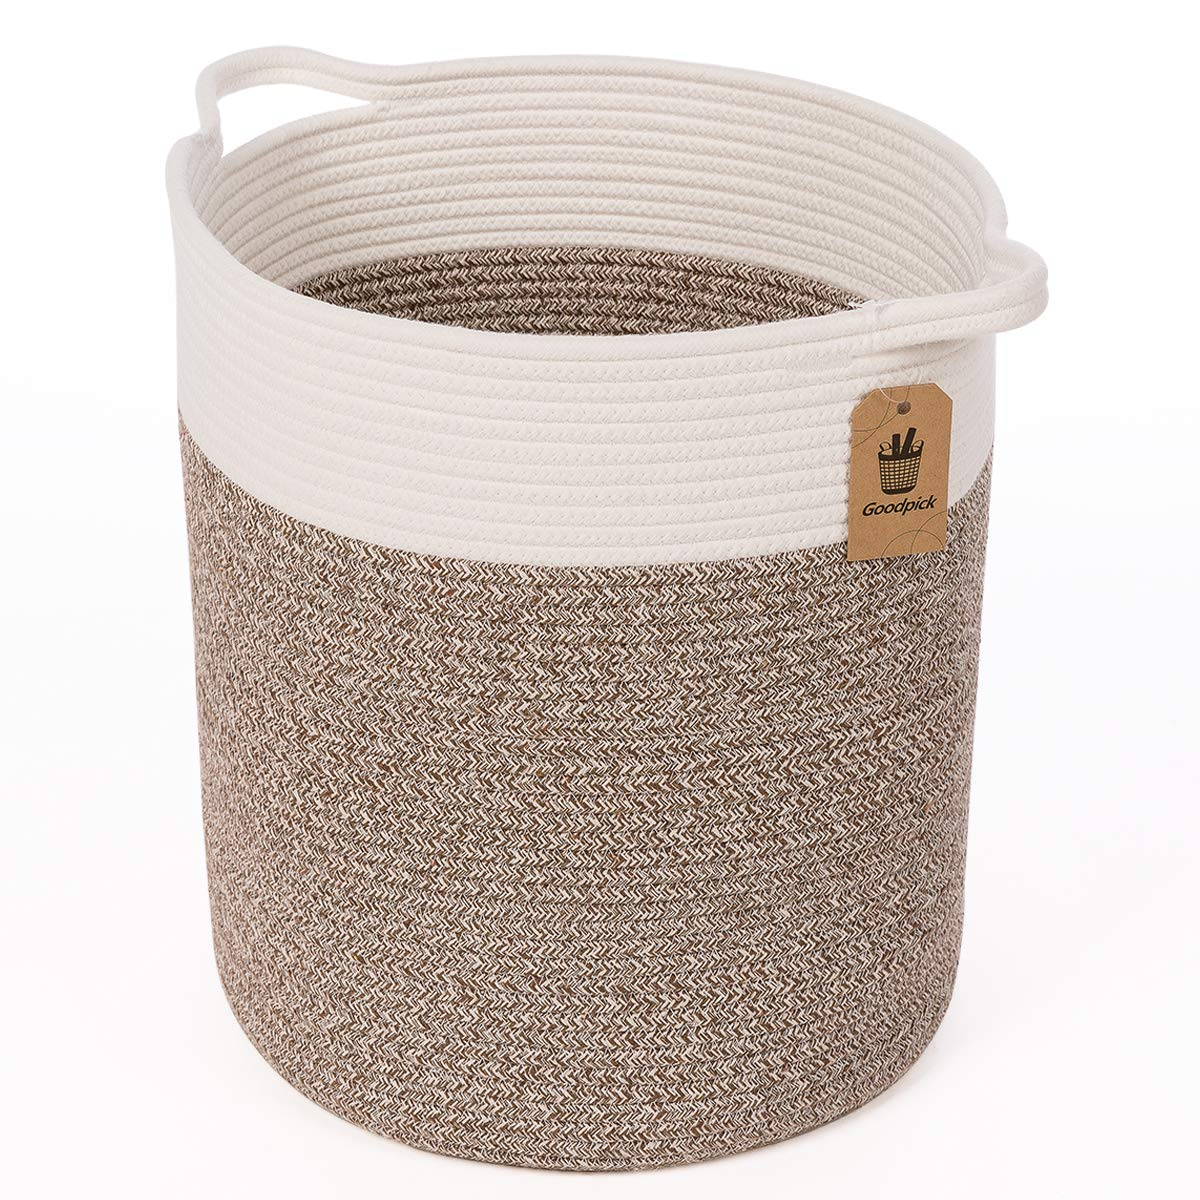 Goodpick Large Cotton Rope Basket - Woven Basket - Baby Laundry Basket - Blanket Basket - Toy Storage Magzines Containers Bin for Living Room Floor Nursery 15''x13''